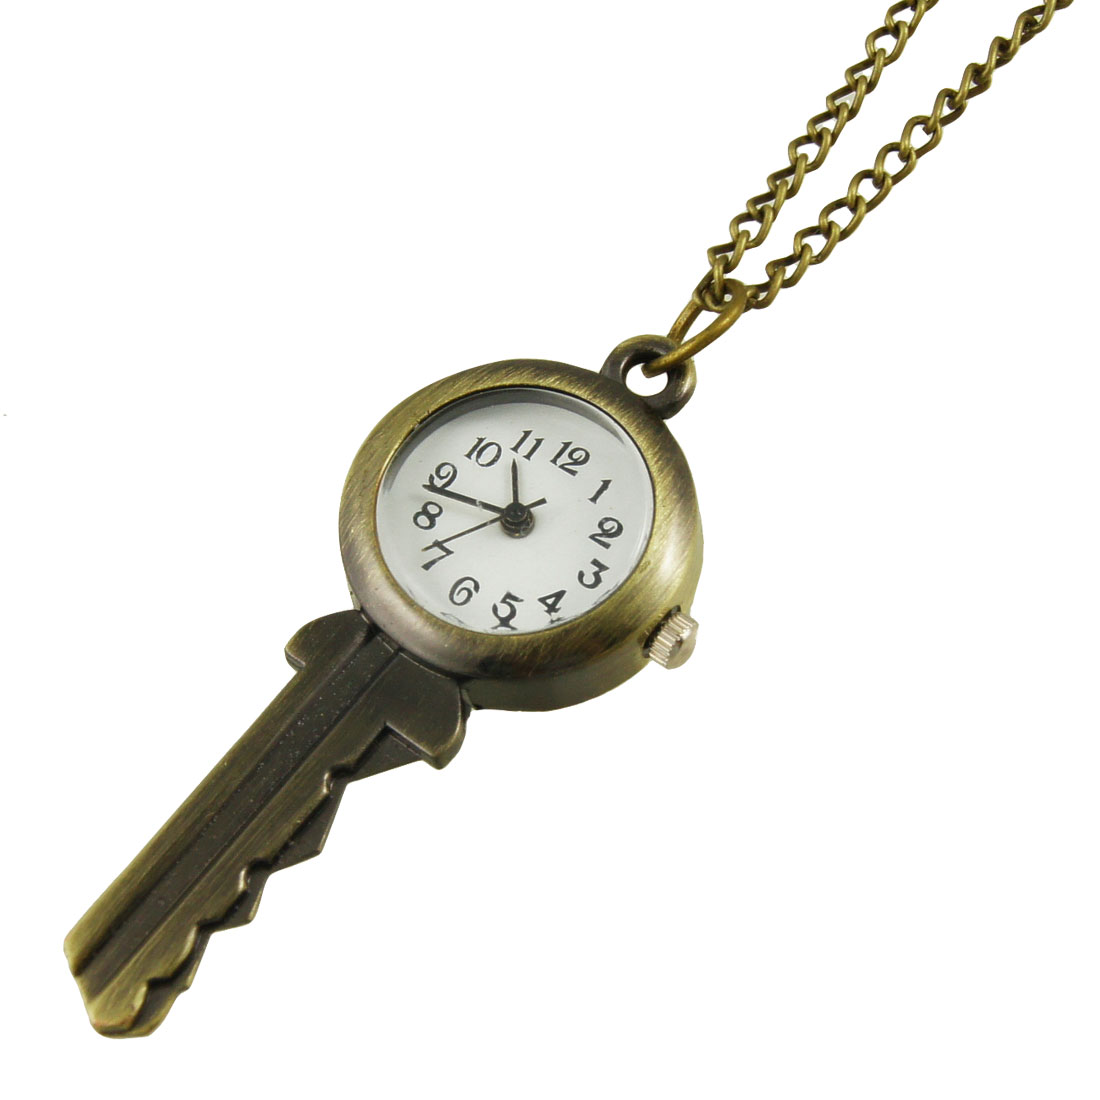 Bronze Tone Key Design Pendant Necklace Qaurtz Watch